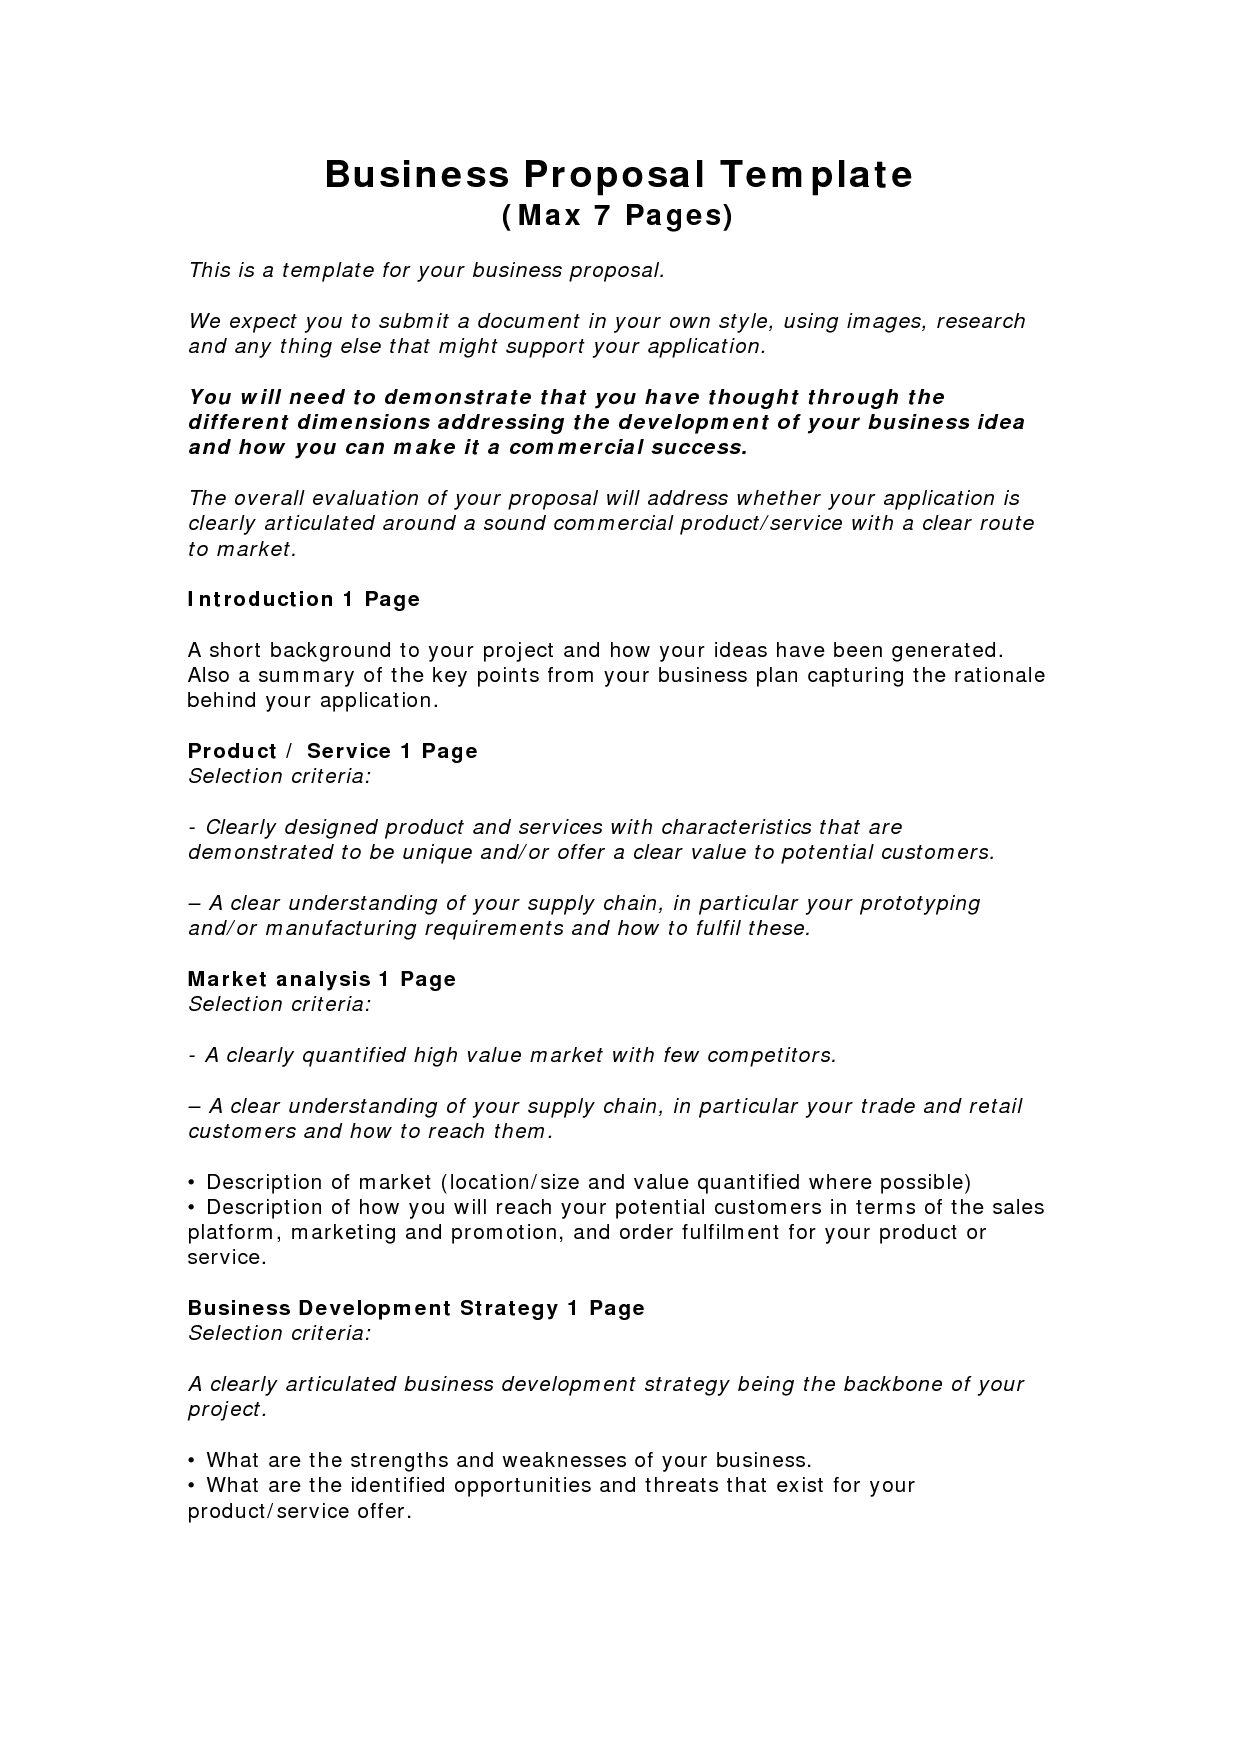 Business Proposal Templates Examples | Business Proposal Template (Max 7  Pages) - PDF